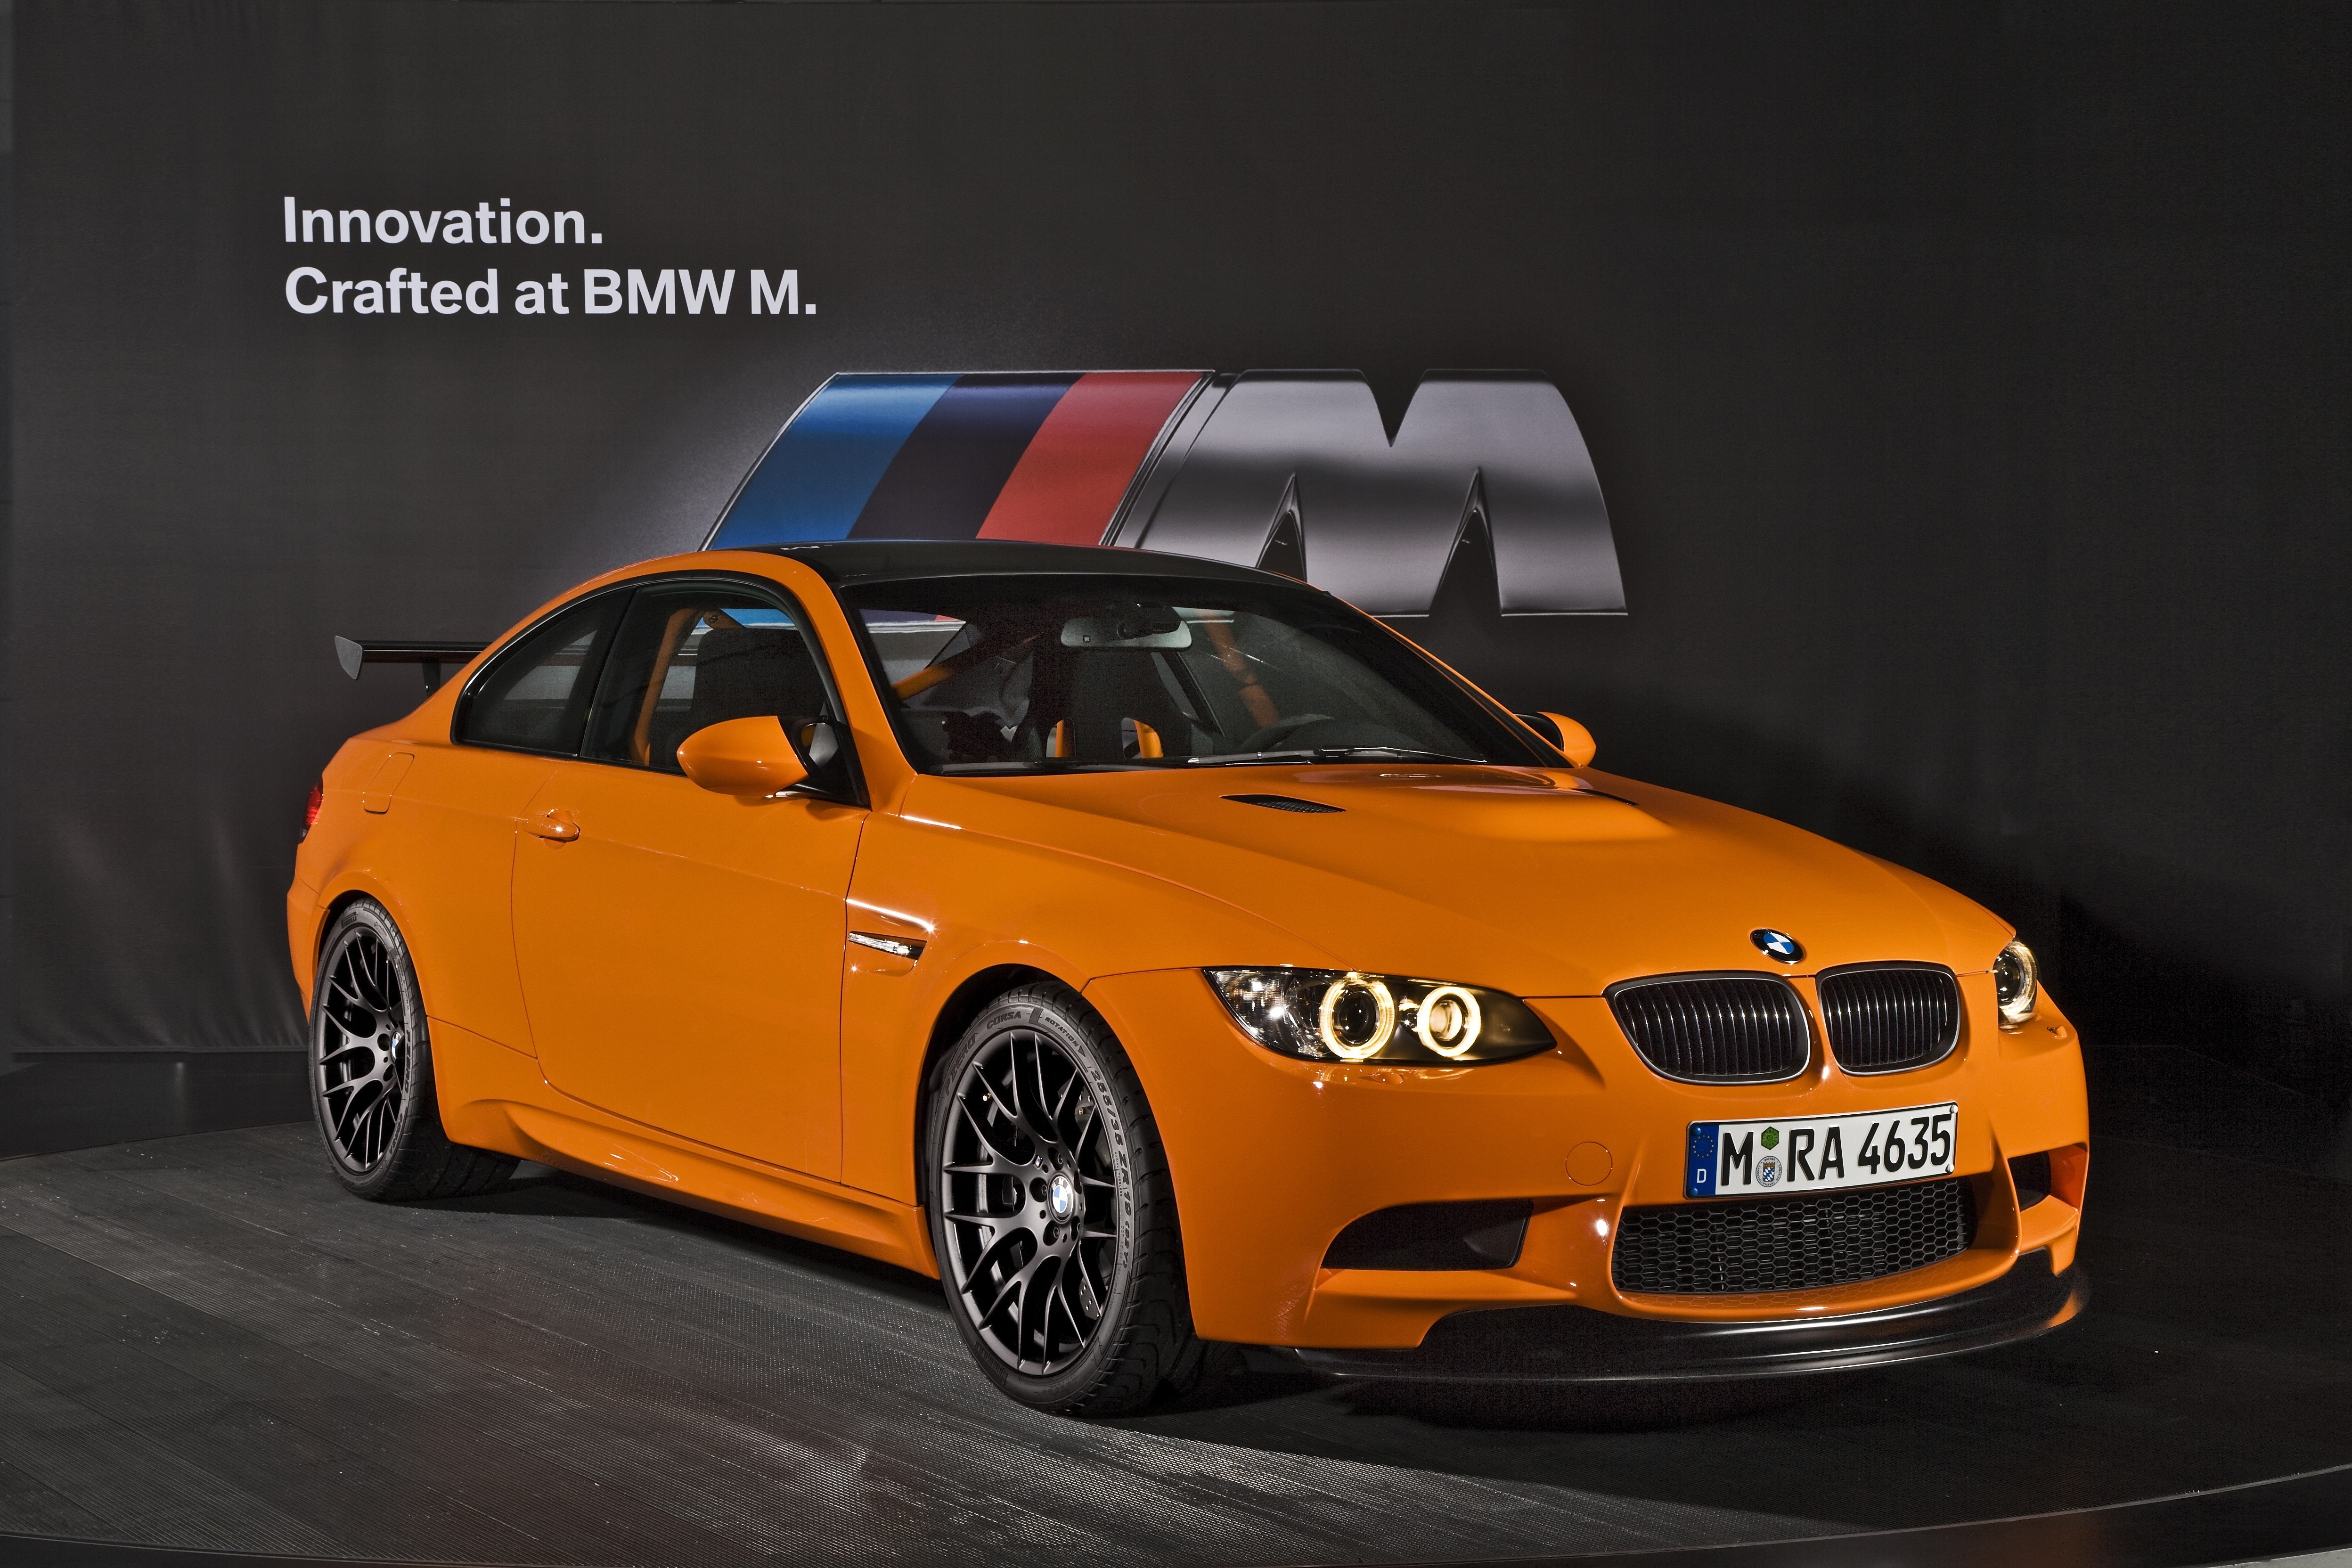 2016 BMW M4 Gts >> The History of BMW M3 Special Editions or The Long Road to the BMW M4 GTS - autoevolution